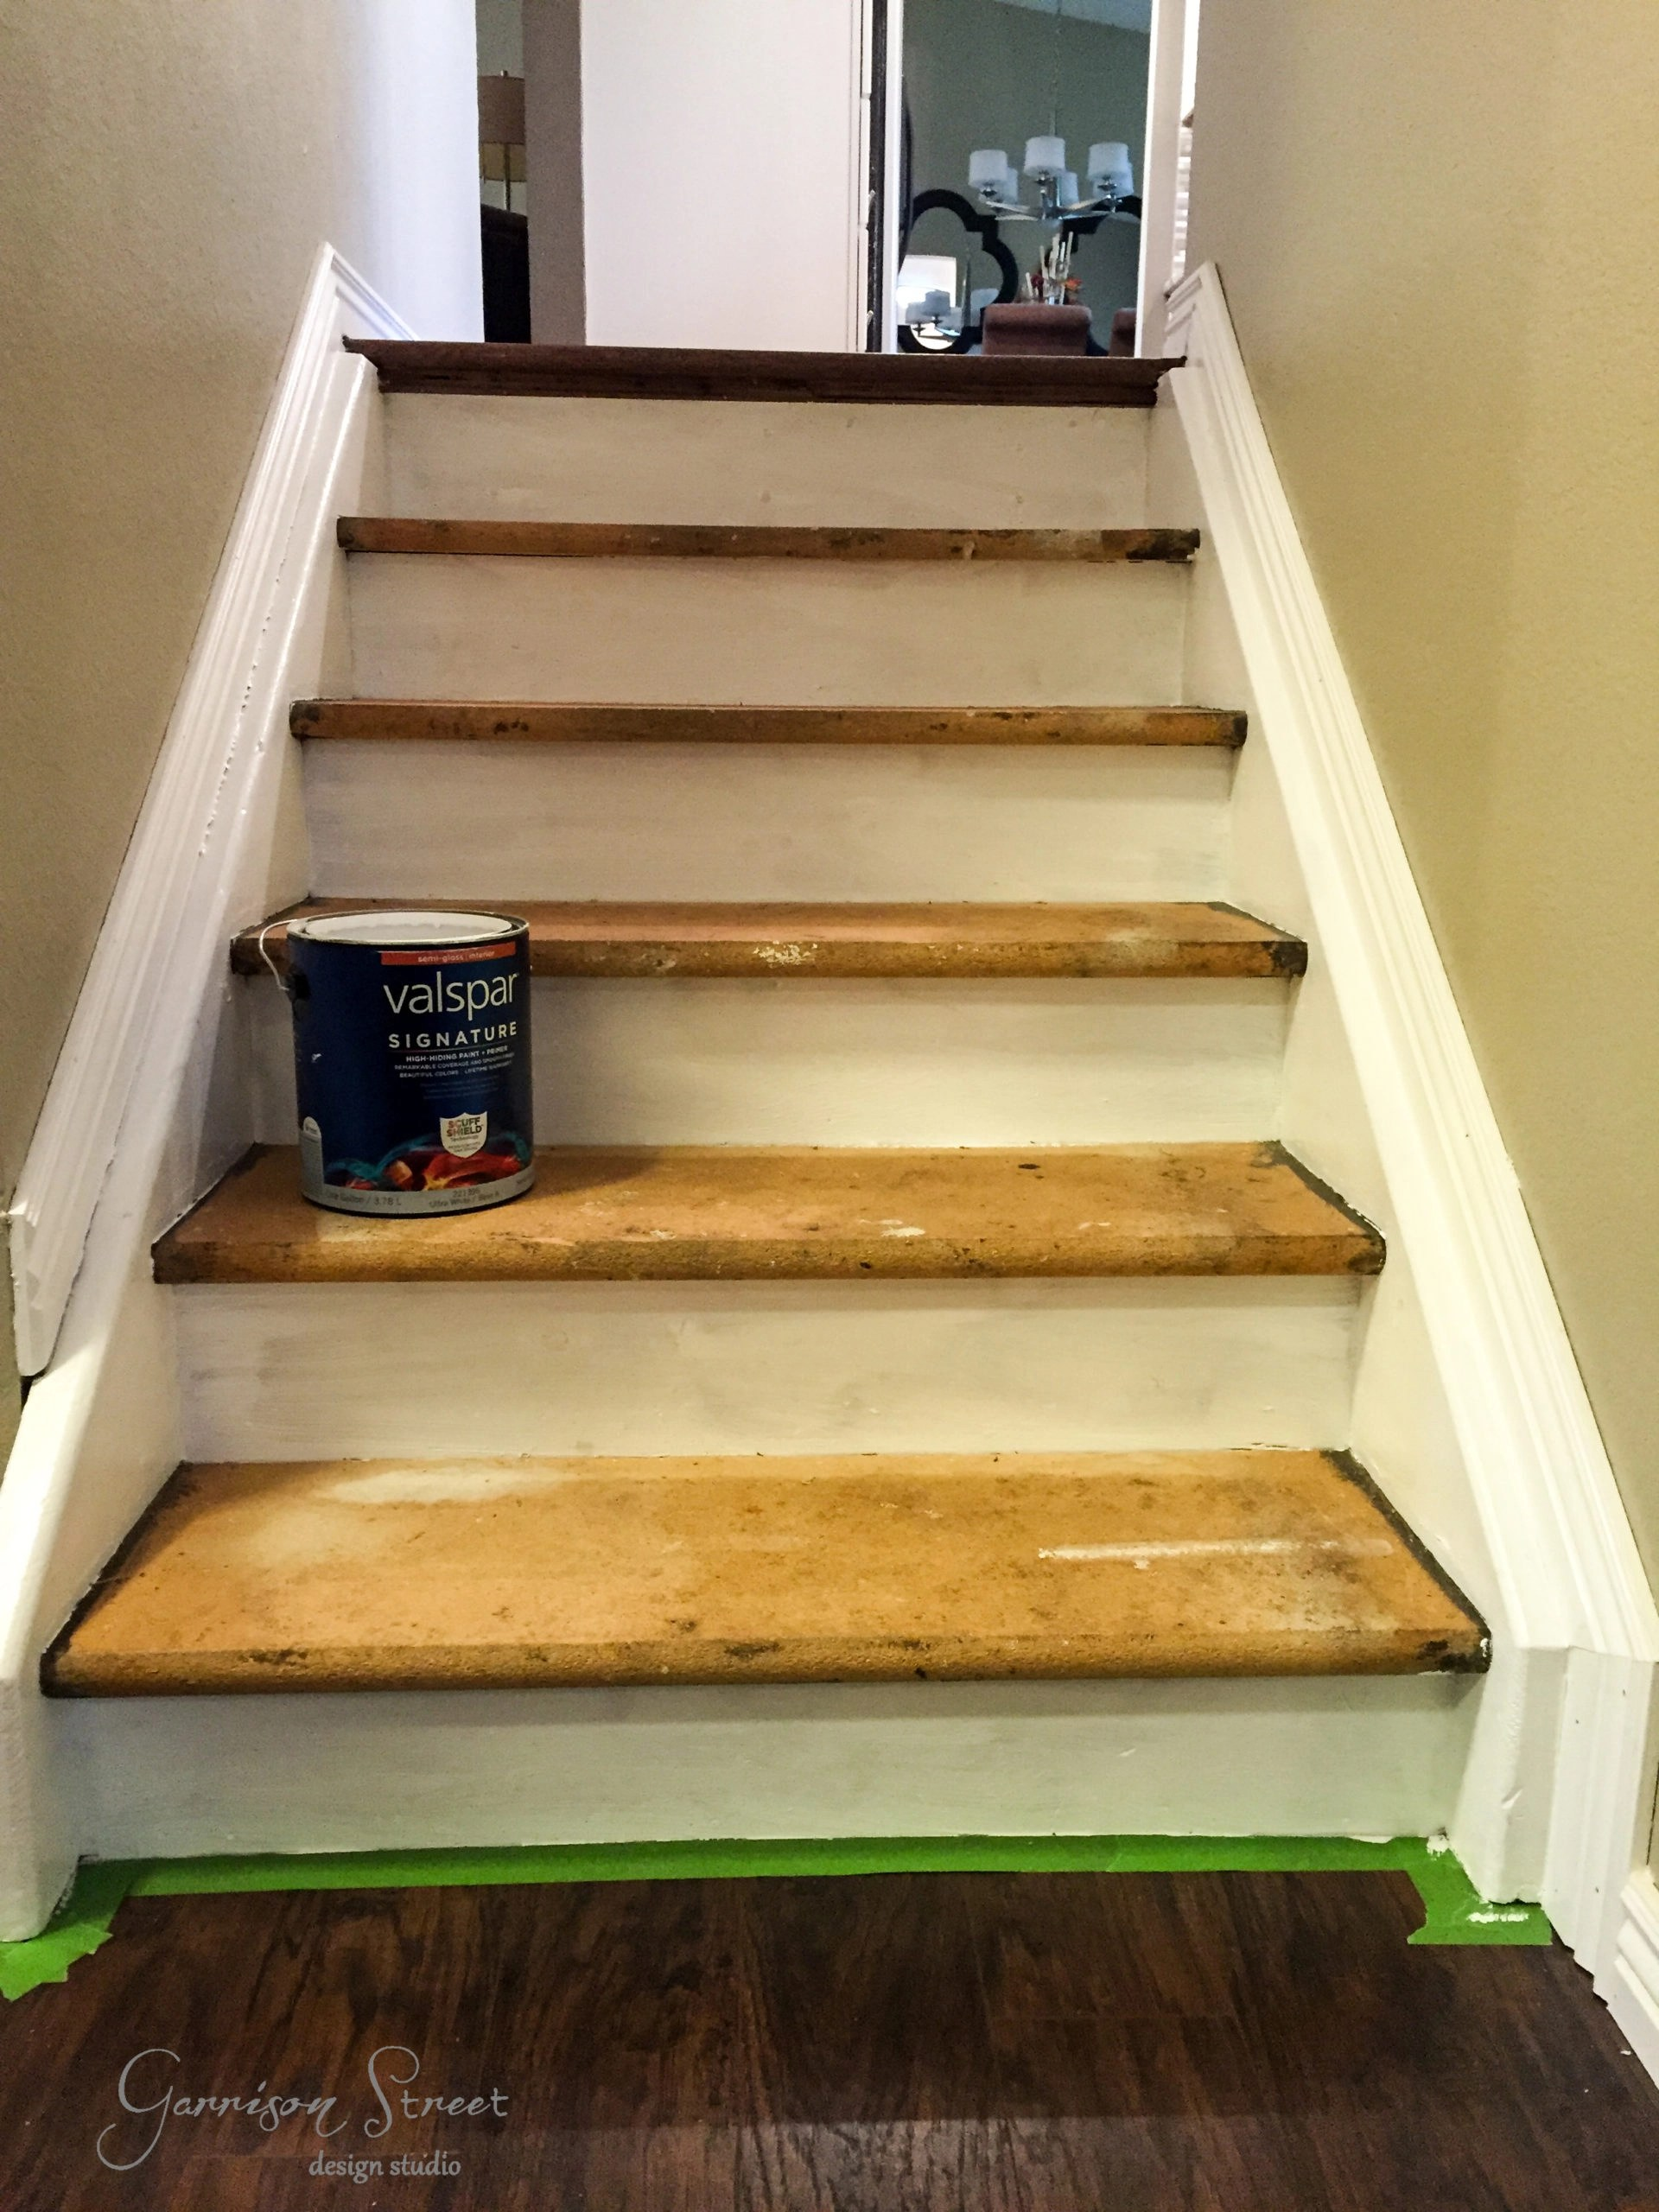 Then I Started On The Treads And Did Every Other Stair So I Could Still Get  Up And Down The Stairs While They Were Drying 🙂